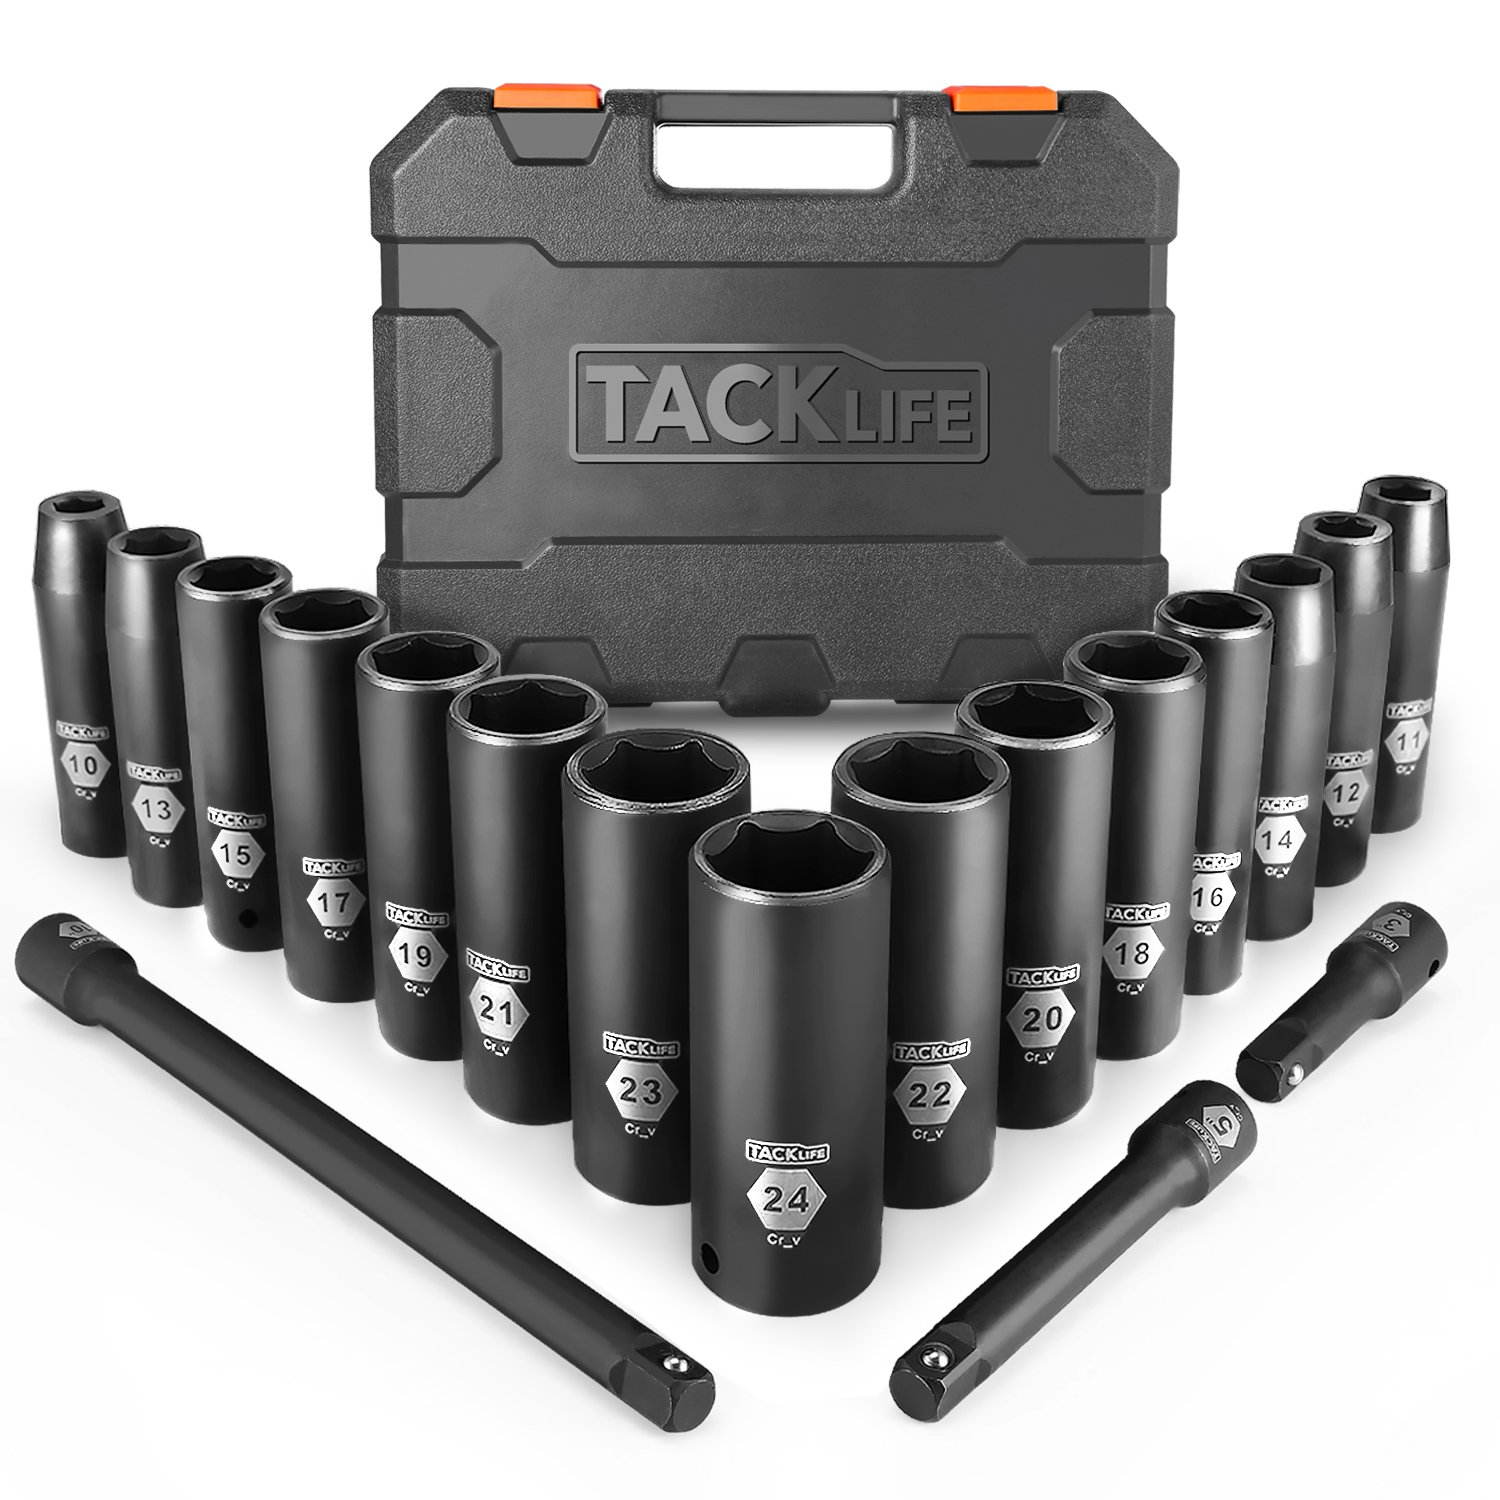 Drive Impact Socket Set, Tacklife 18pcs 1/2-inch Drive Deep Impact Socket Set, 6 Point, 10 - 24mm, 15pcs Metric Sockets with 3pcs 1/2-Inch Drive Impact Extension Bar Set - HIS1A by TACKLIFE